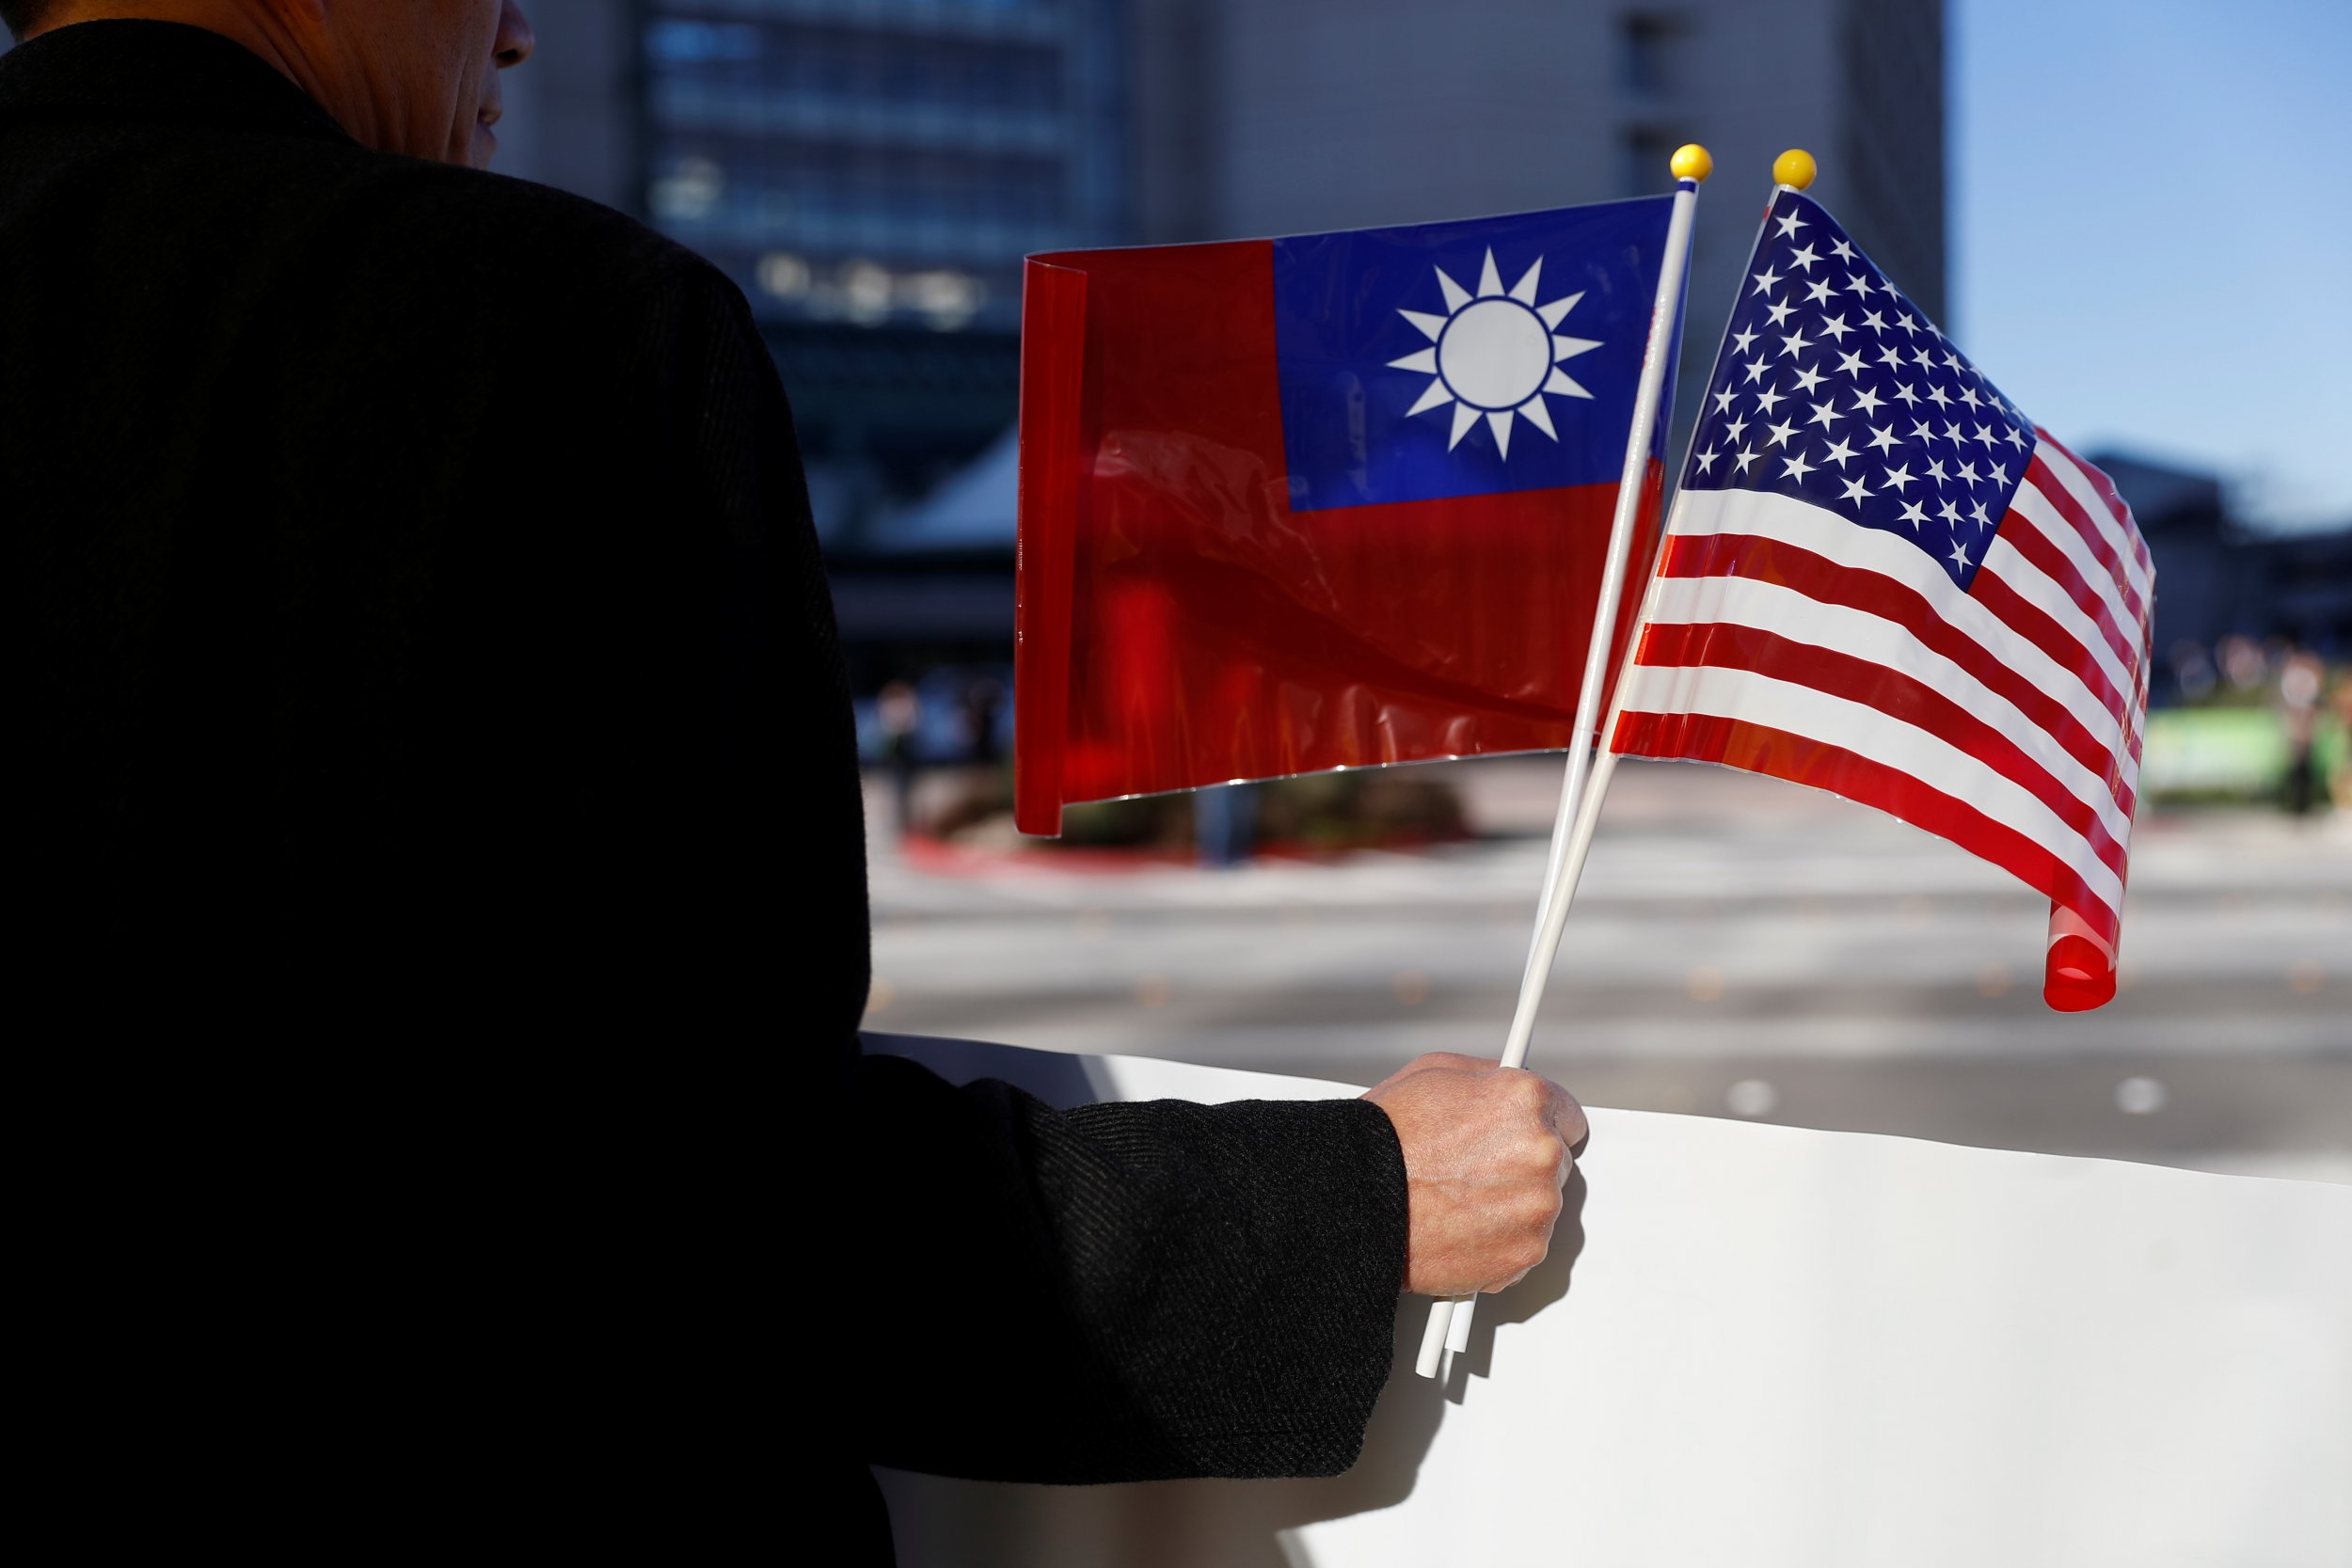 Taiwan/US flags